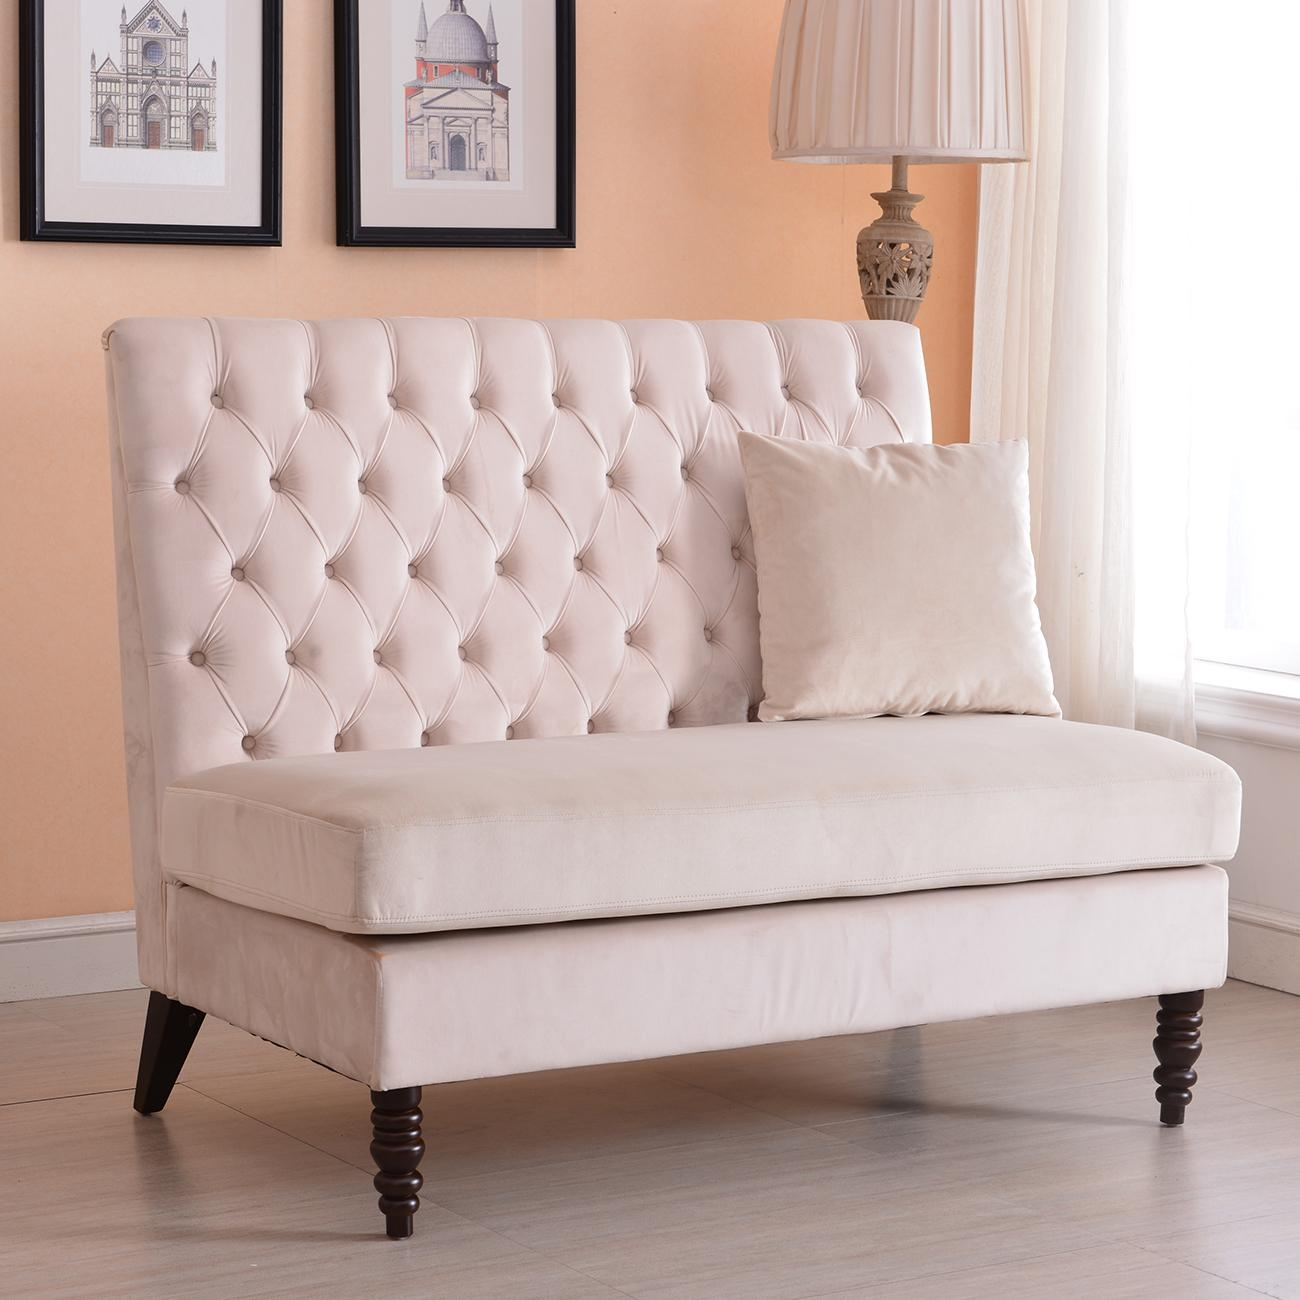 New Modern Tufted Settee Bedroom Bench Sofa High Back Cushion Seat pertaining to Bench Cushion Sofas